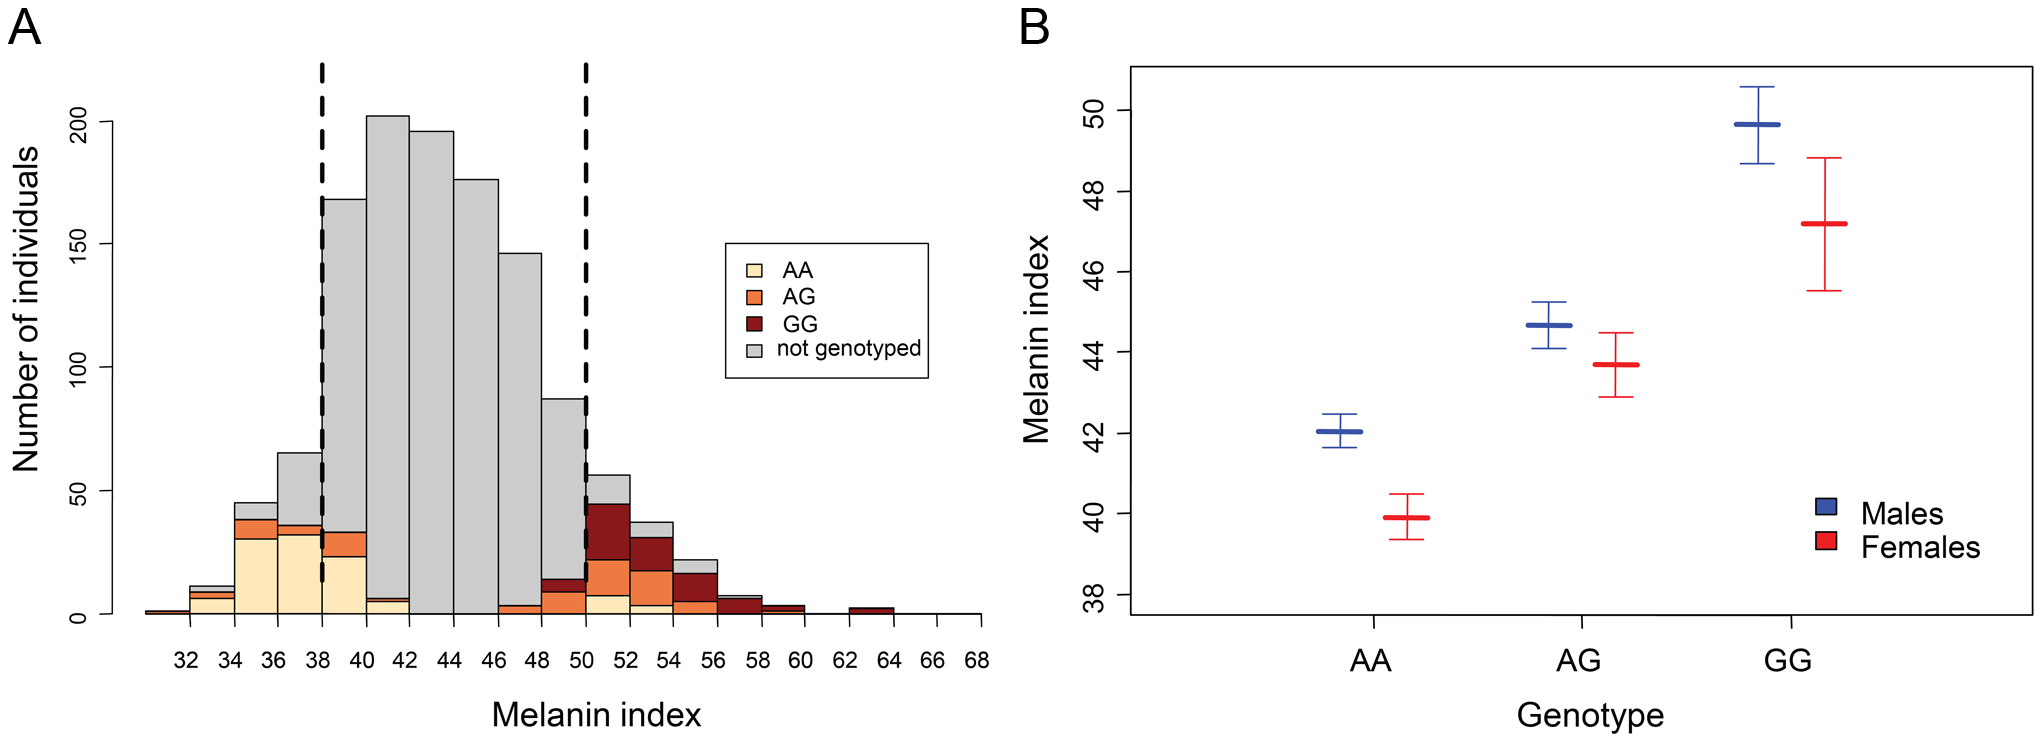 Association of rs1426654 genotypes with melanin index.